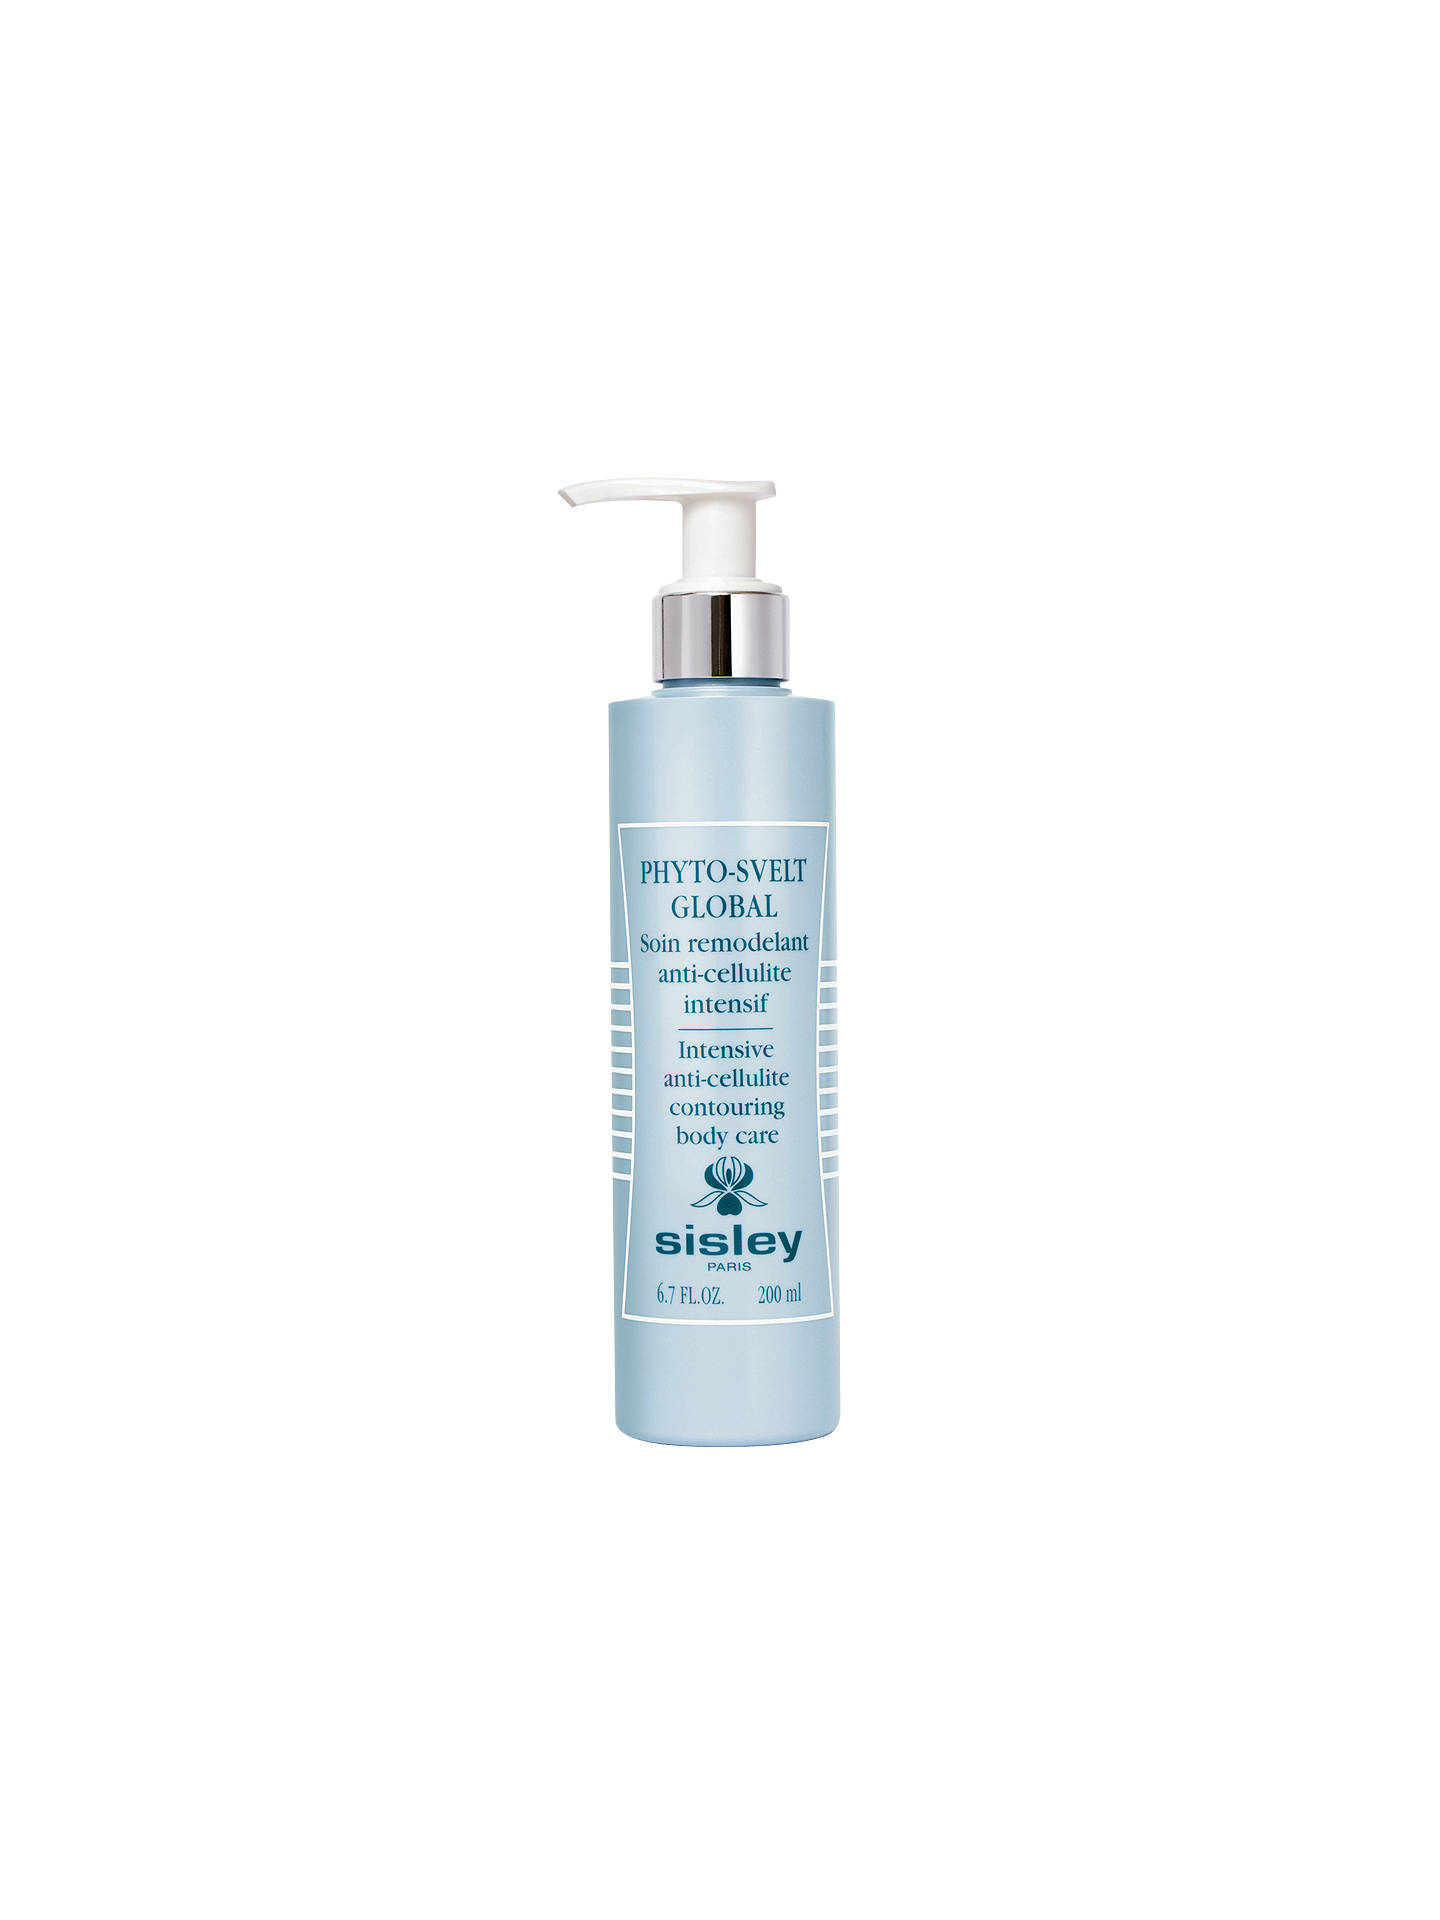 BuySisley Phyto-Svelt Global Contouring Body Care, 200ml Online at johnlewis.com